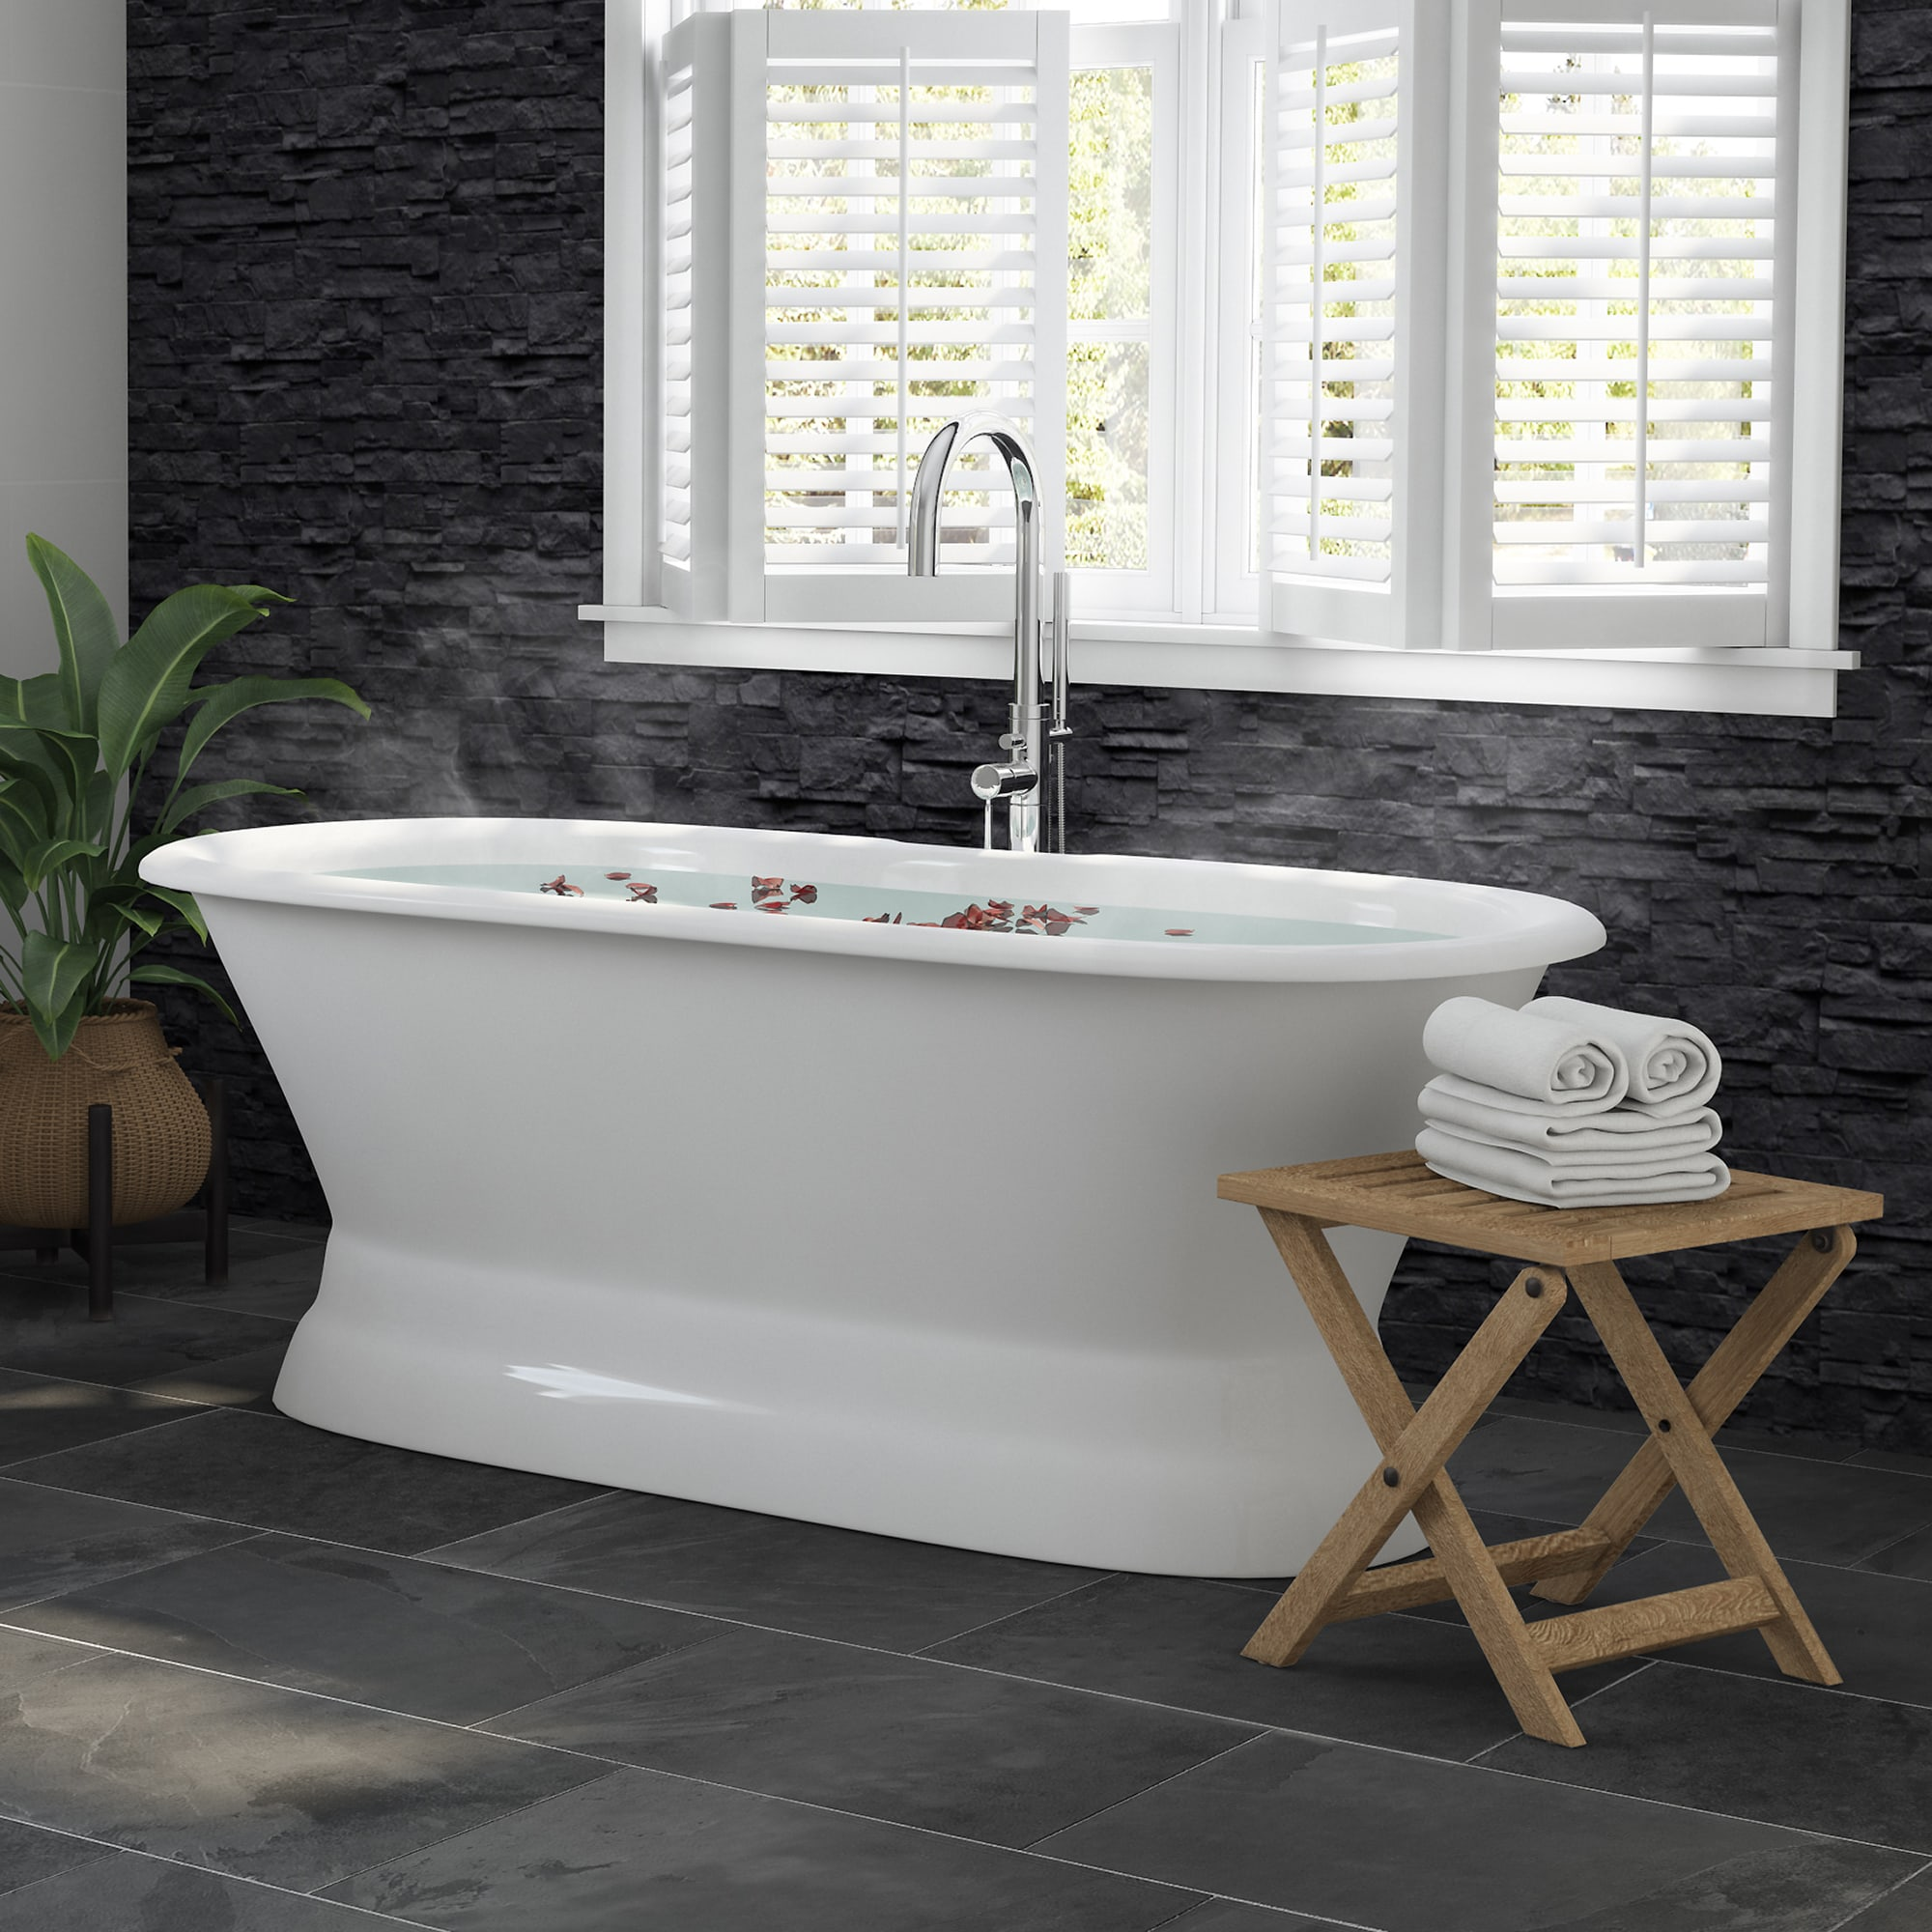 """66"""" Cast Iron Dual Ended Pedestal Bathtub with no Faucet drillings & Complete plumbing package in Chrome"""